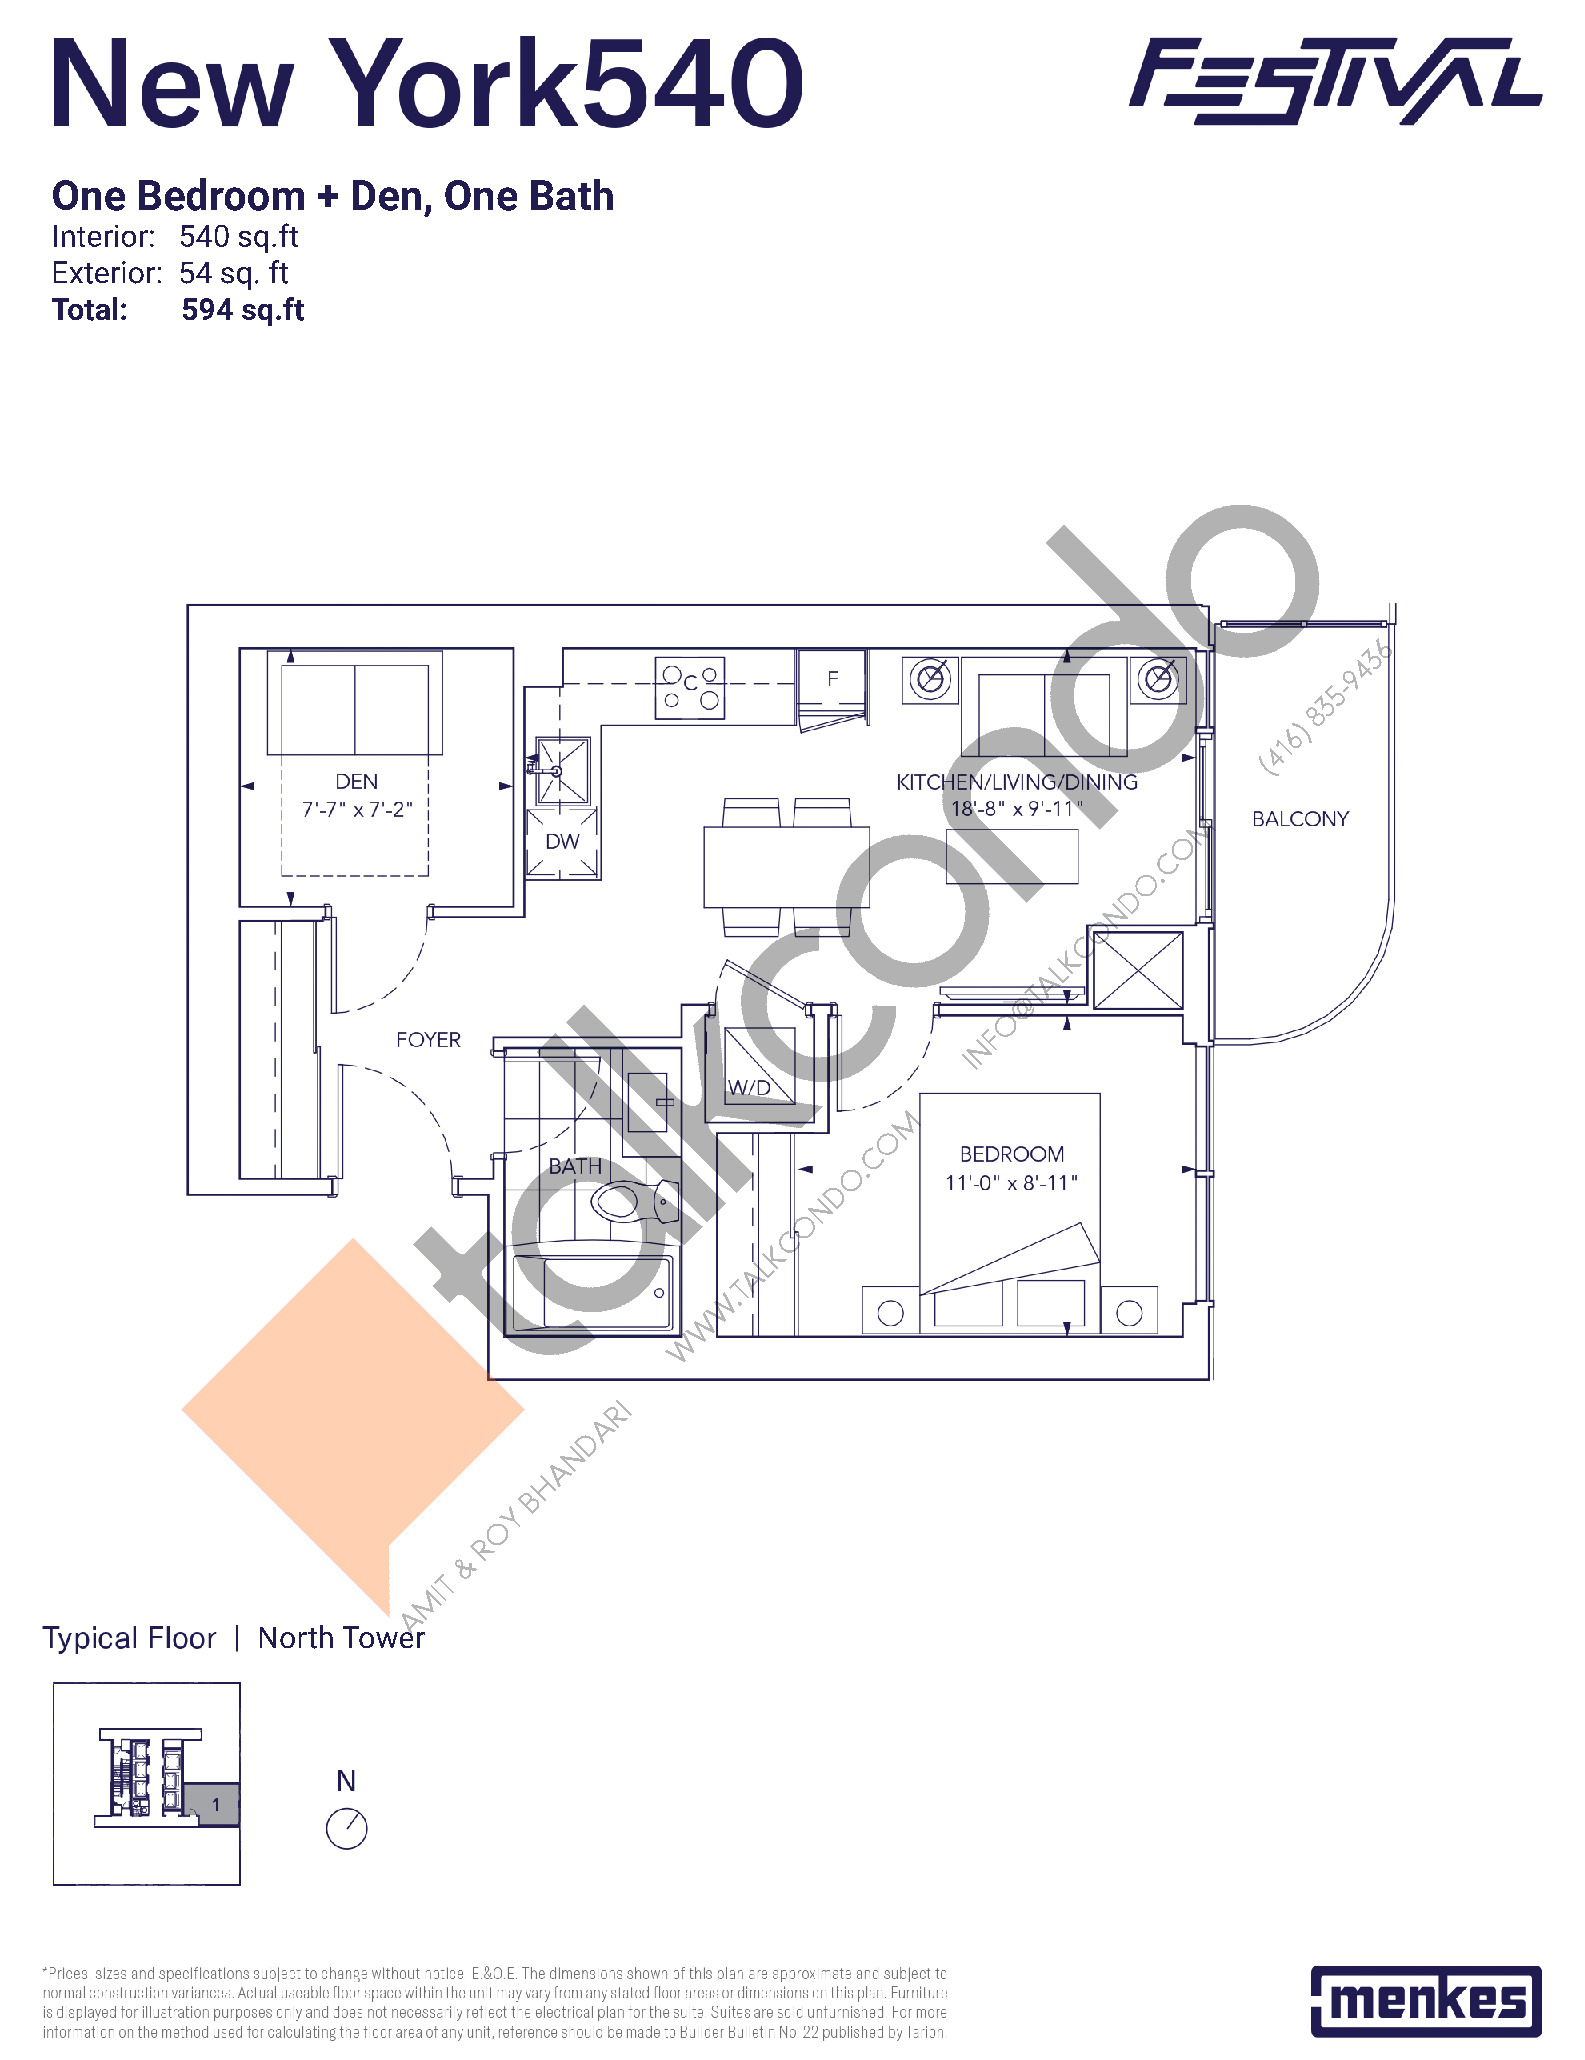 New York 540 Floor Plan at Festival Condos North Tower - 540 sq.ft